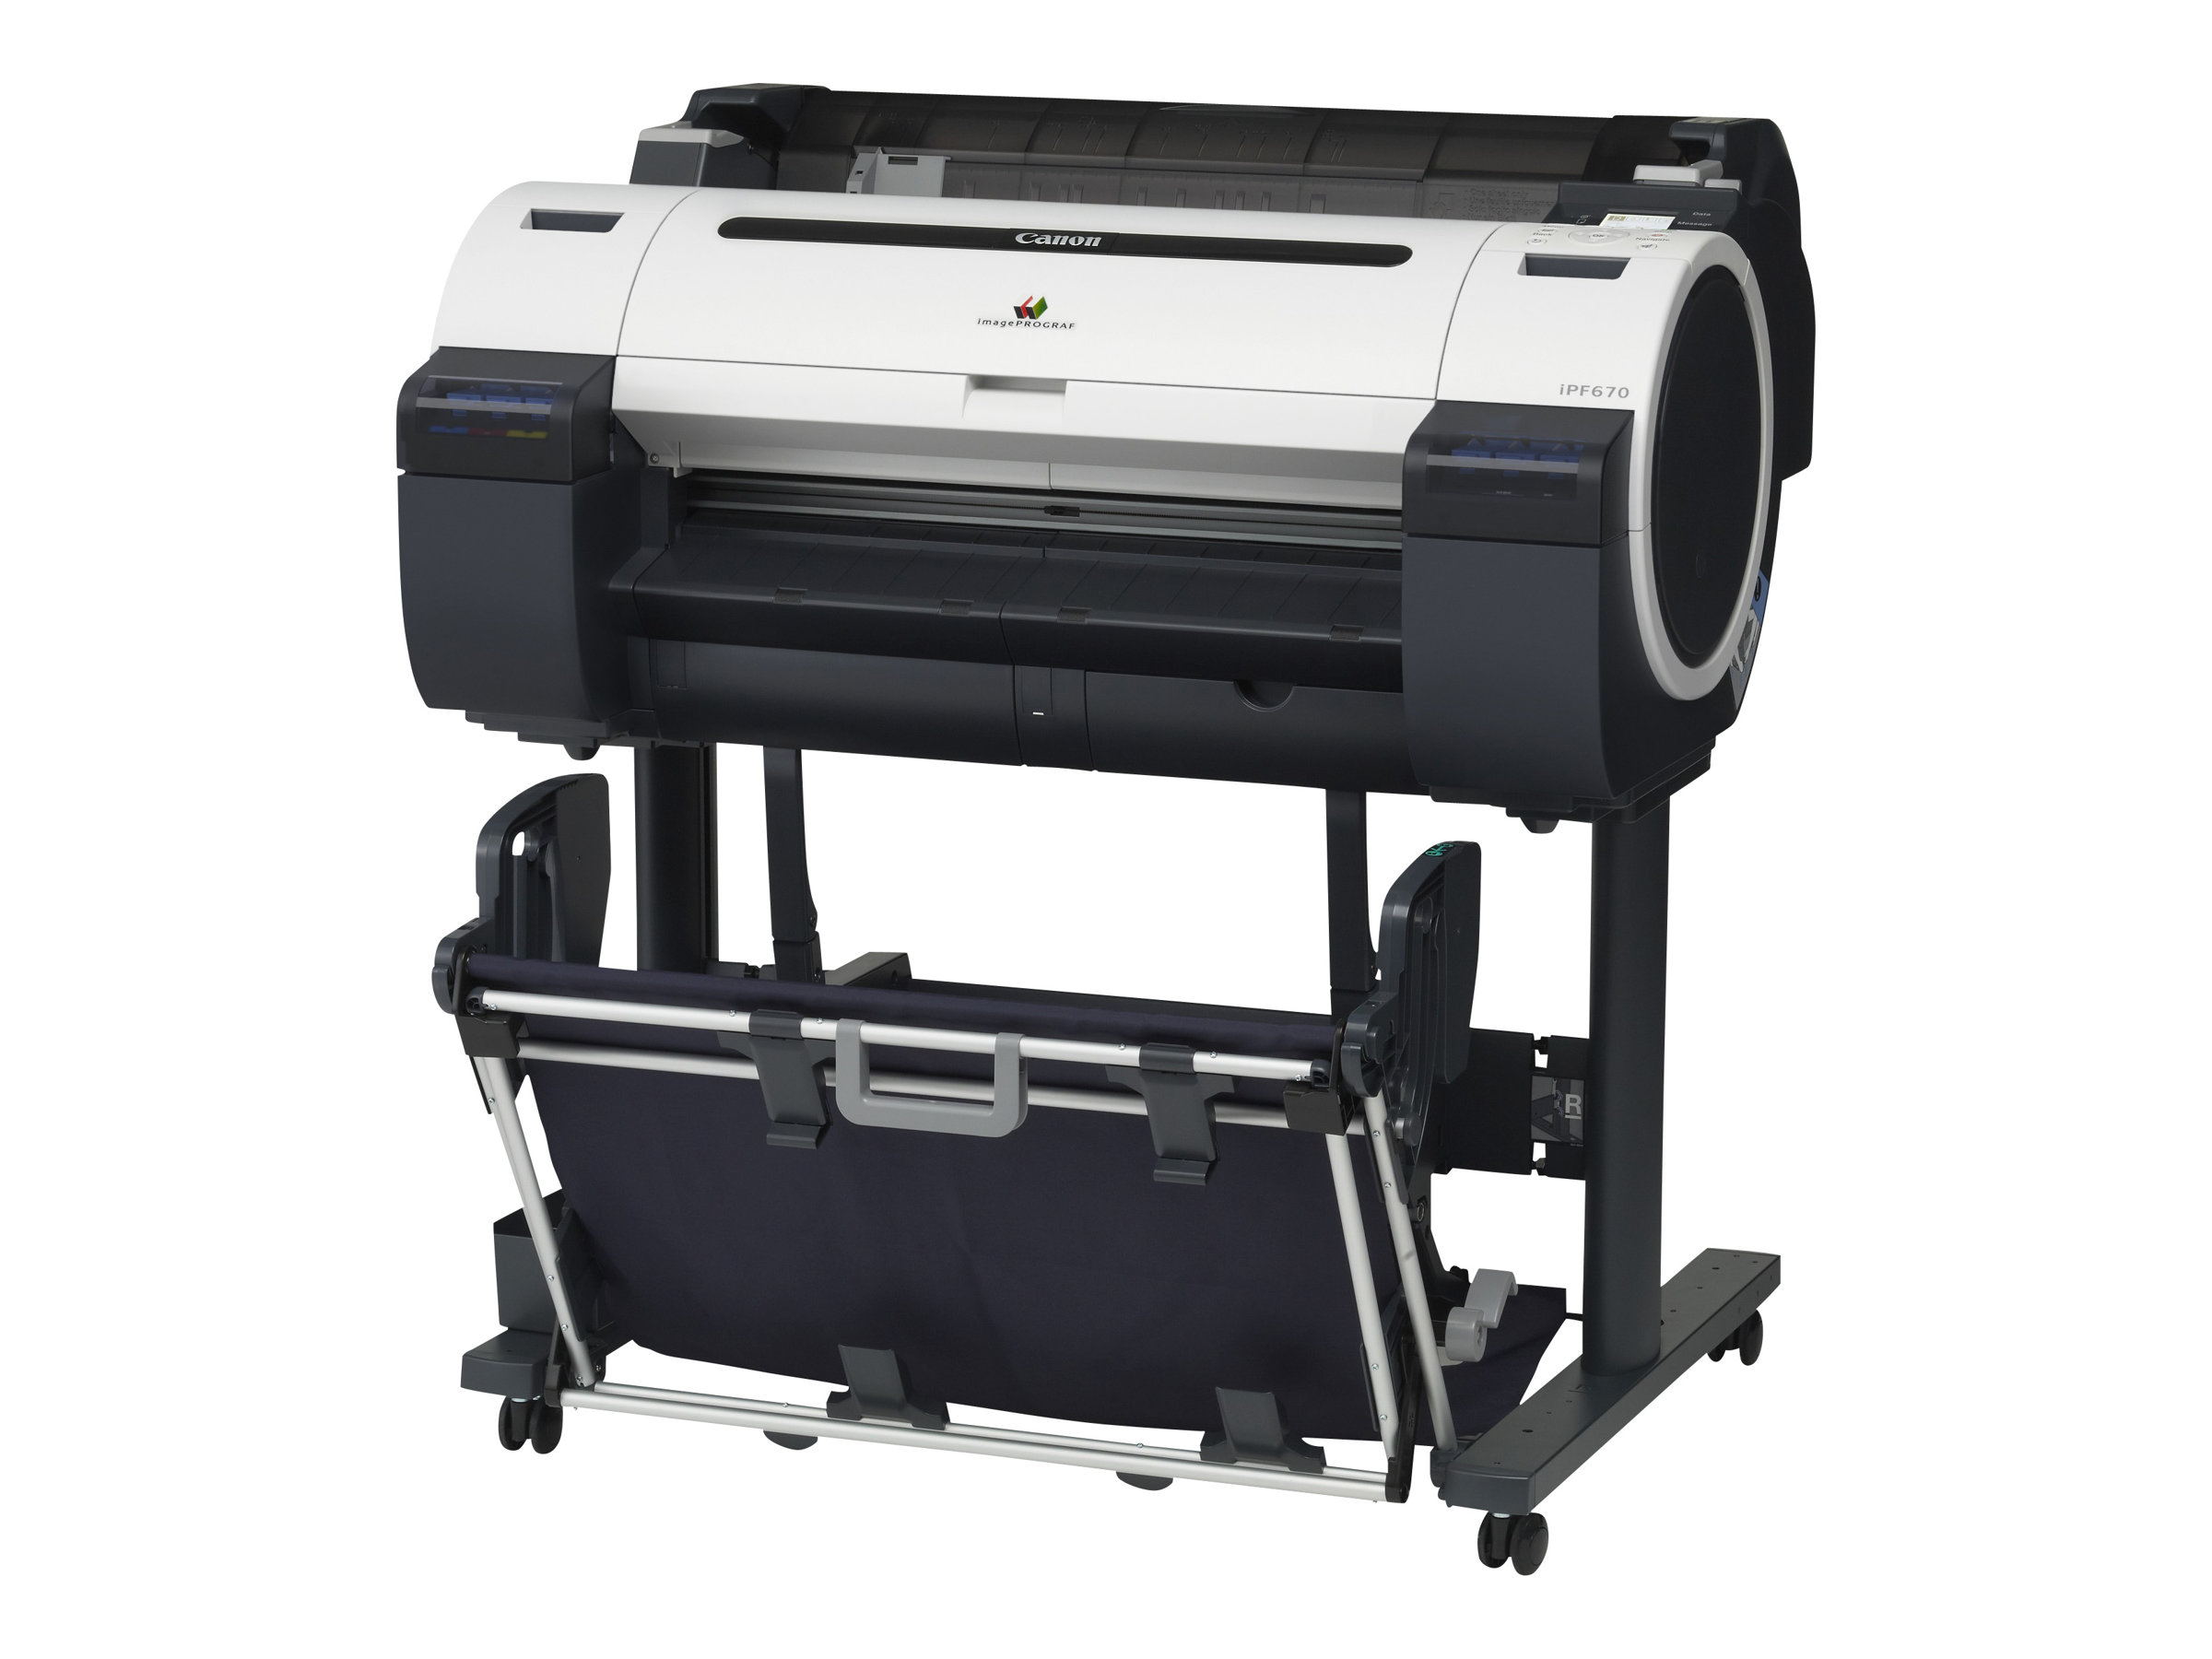 Canon imagePROGRAF iPF670 - without stand - large-format printer - color - ink-jet